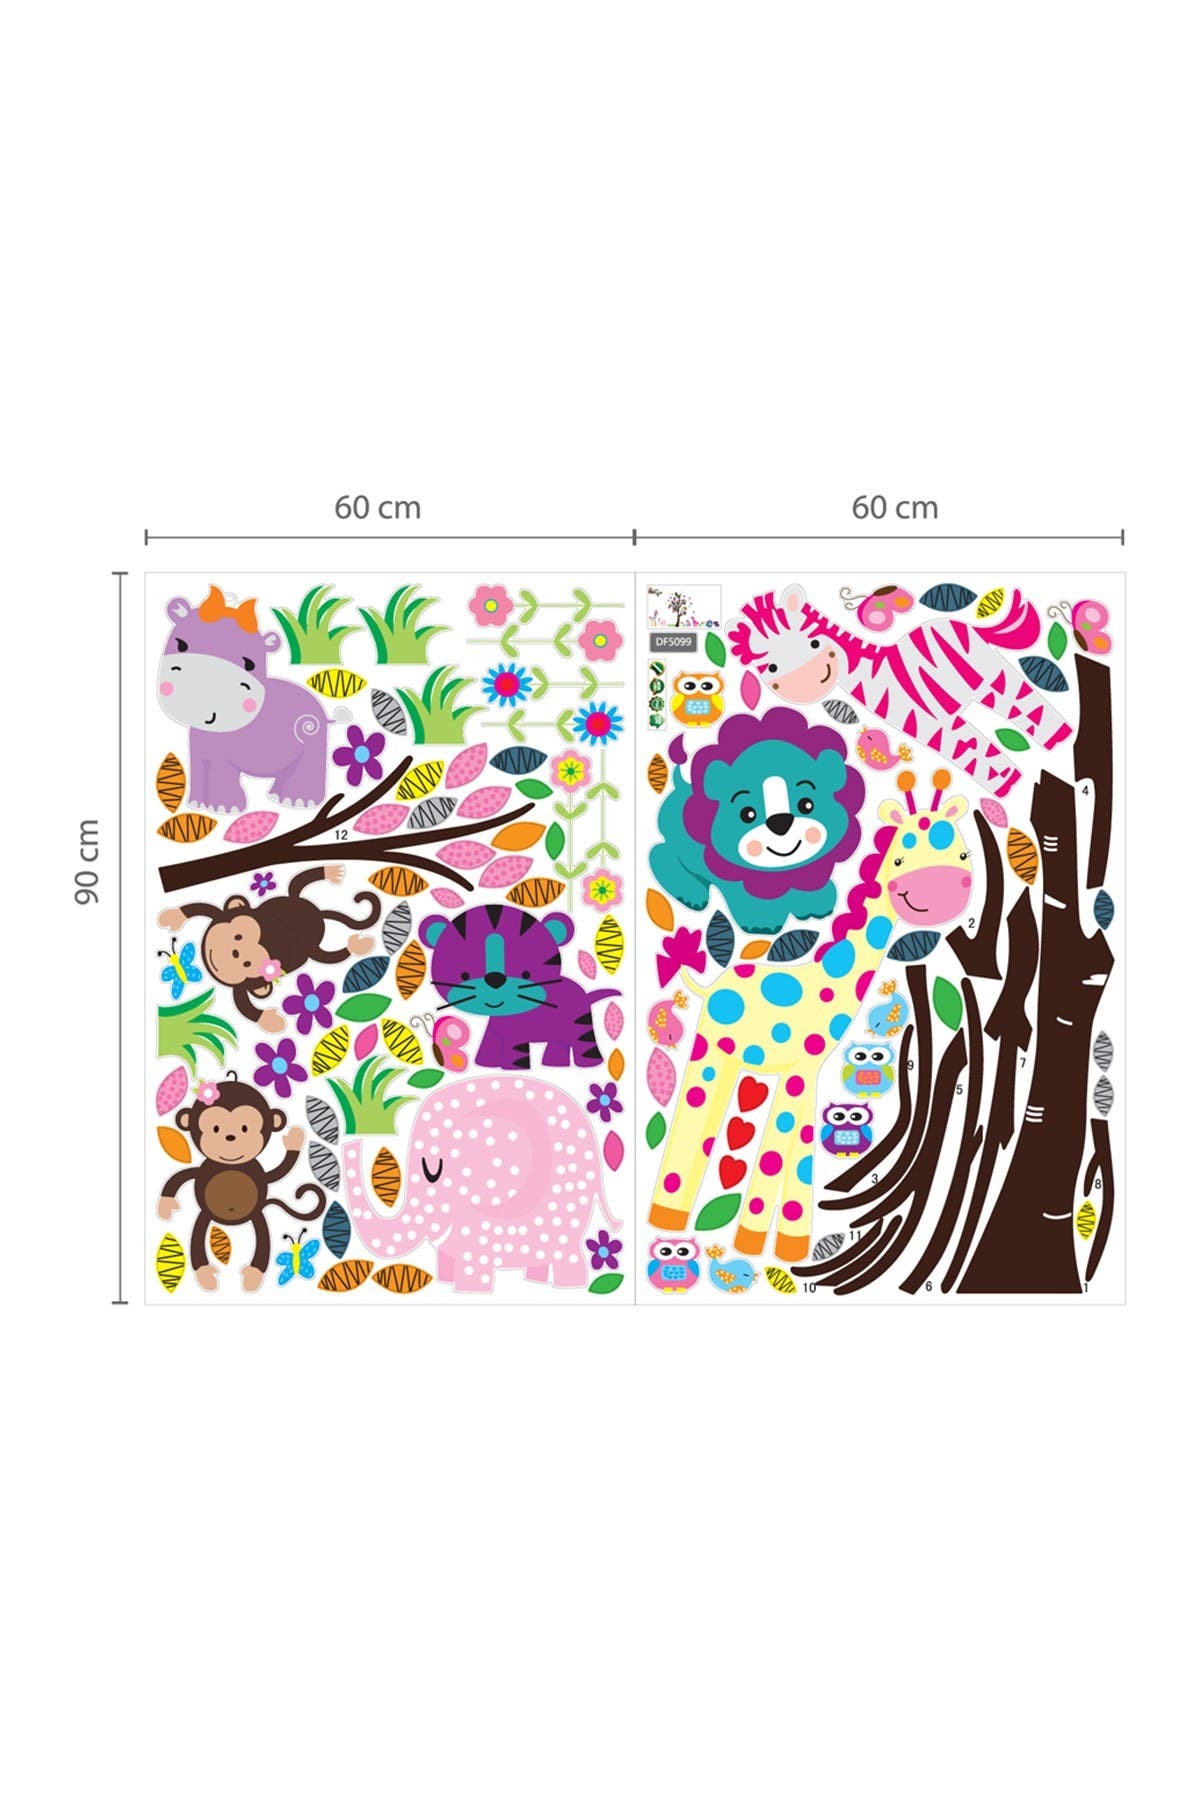 Image of WalPlus Happy Animals, Owl Tree, & Little Chick Grass Decal